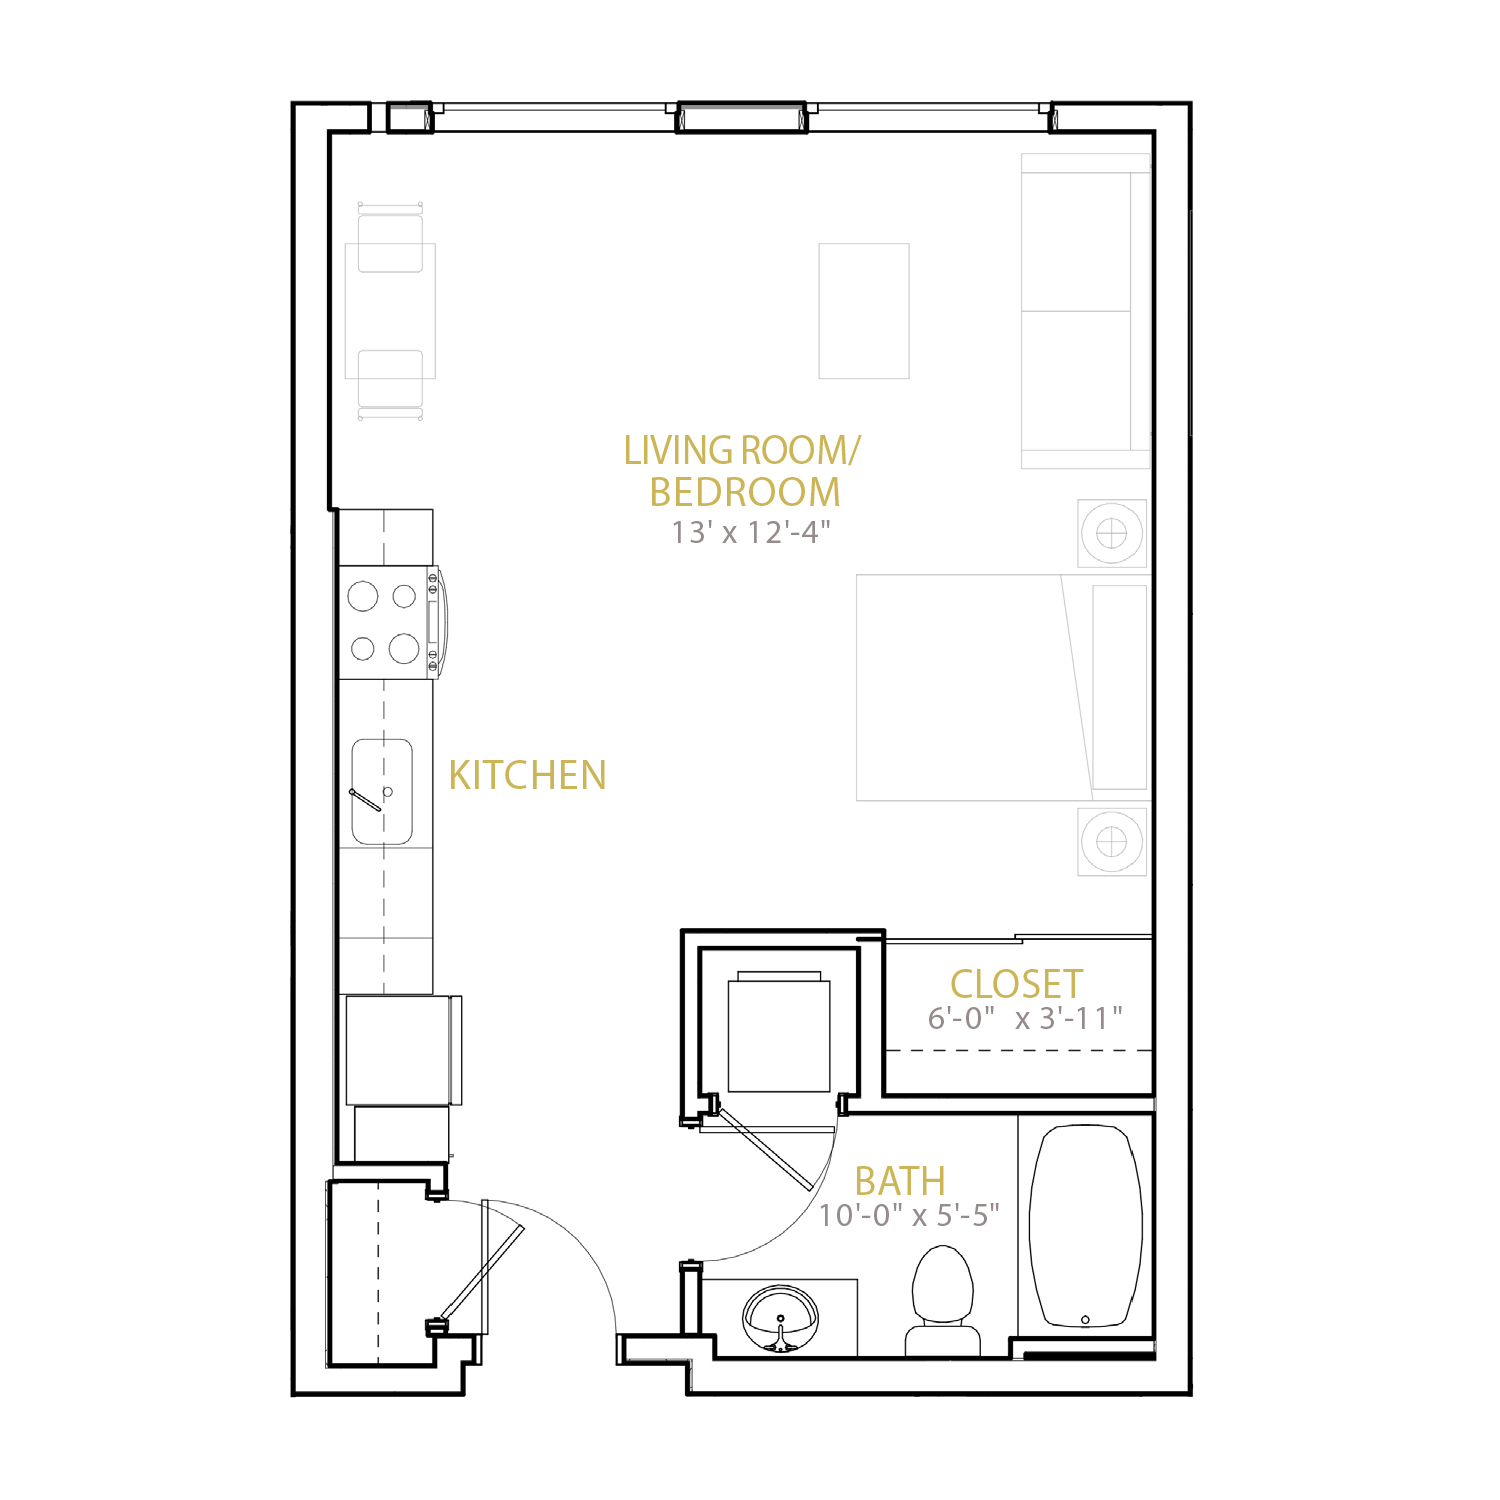 A Three floor plan diagram. A studio apartment with one bathroom and an open kitchen and living space.